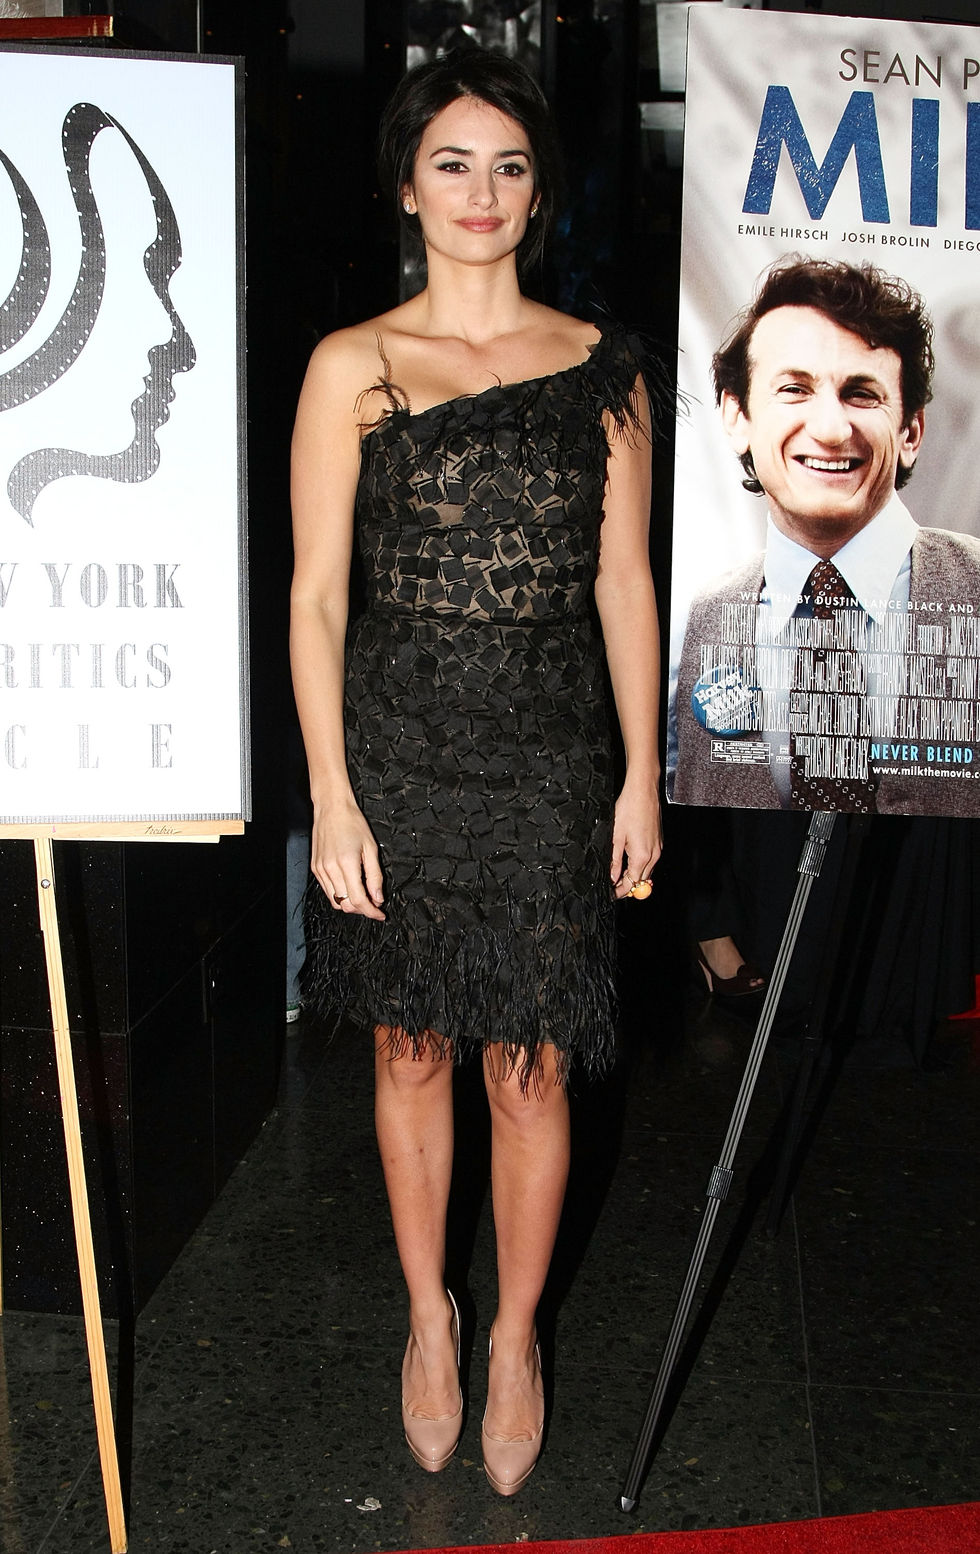 penelope-cruz-2008-new-york-film-critics-circle-awards-in-new-york-city-01